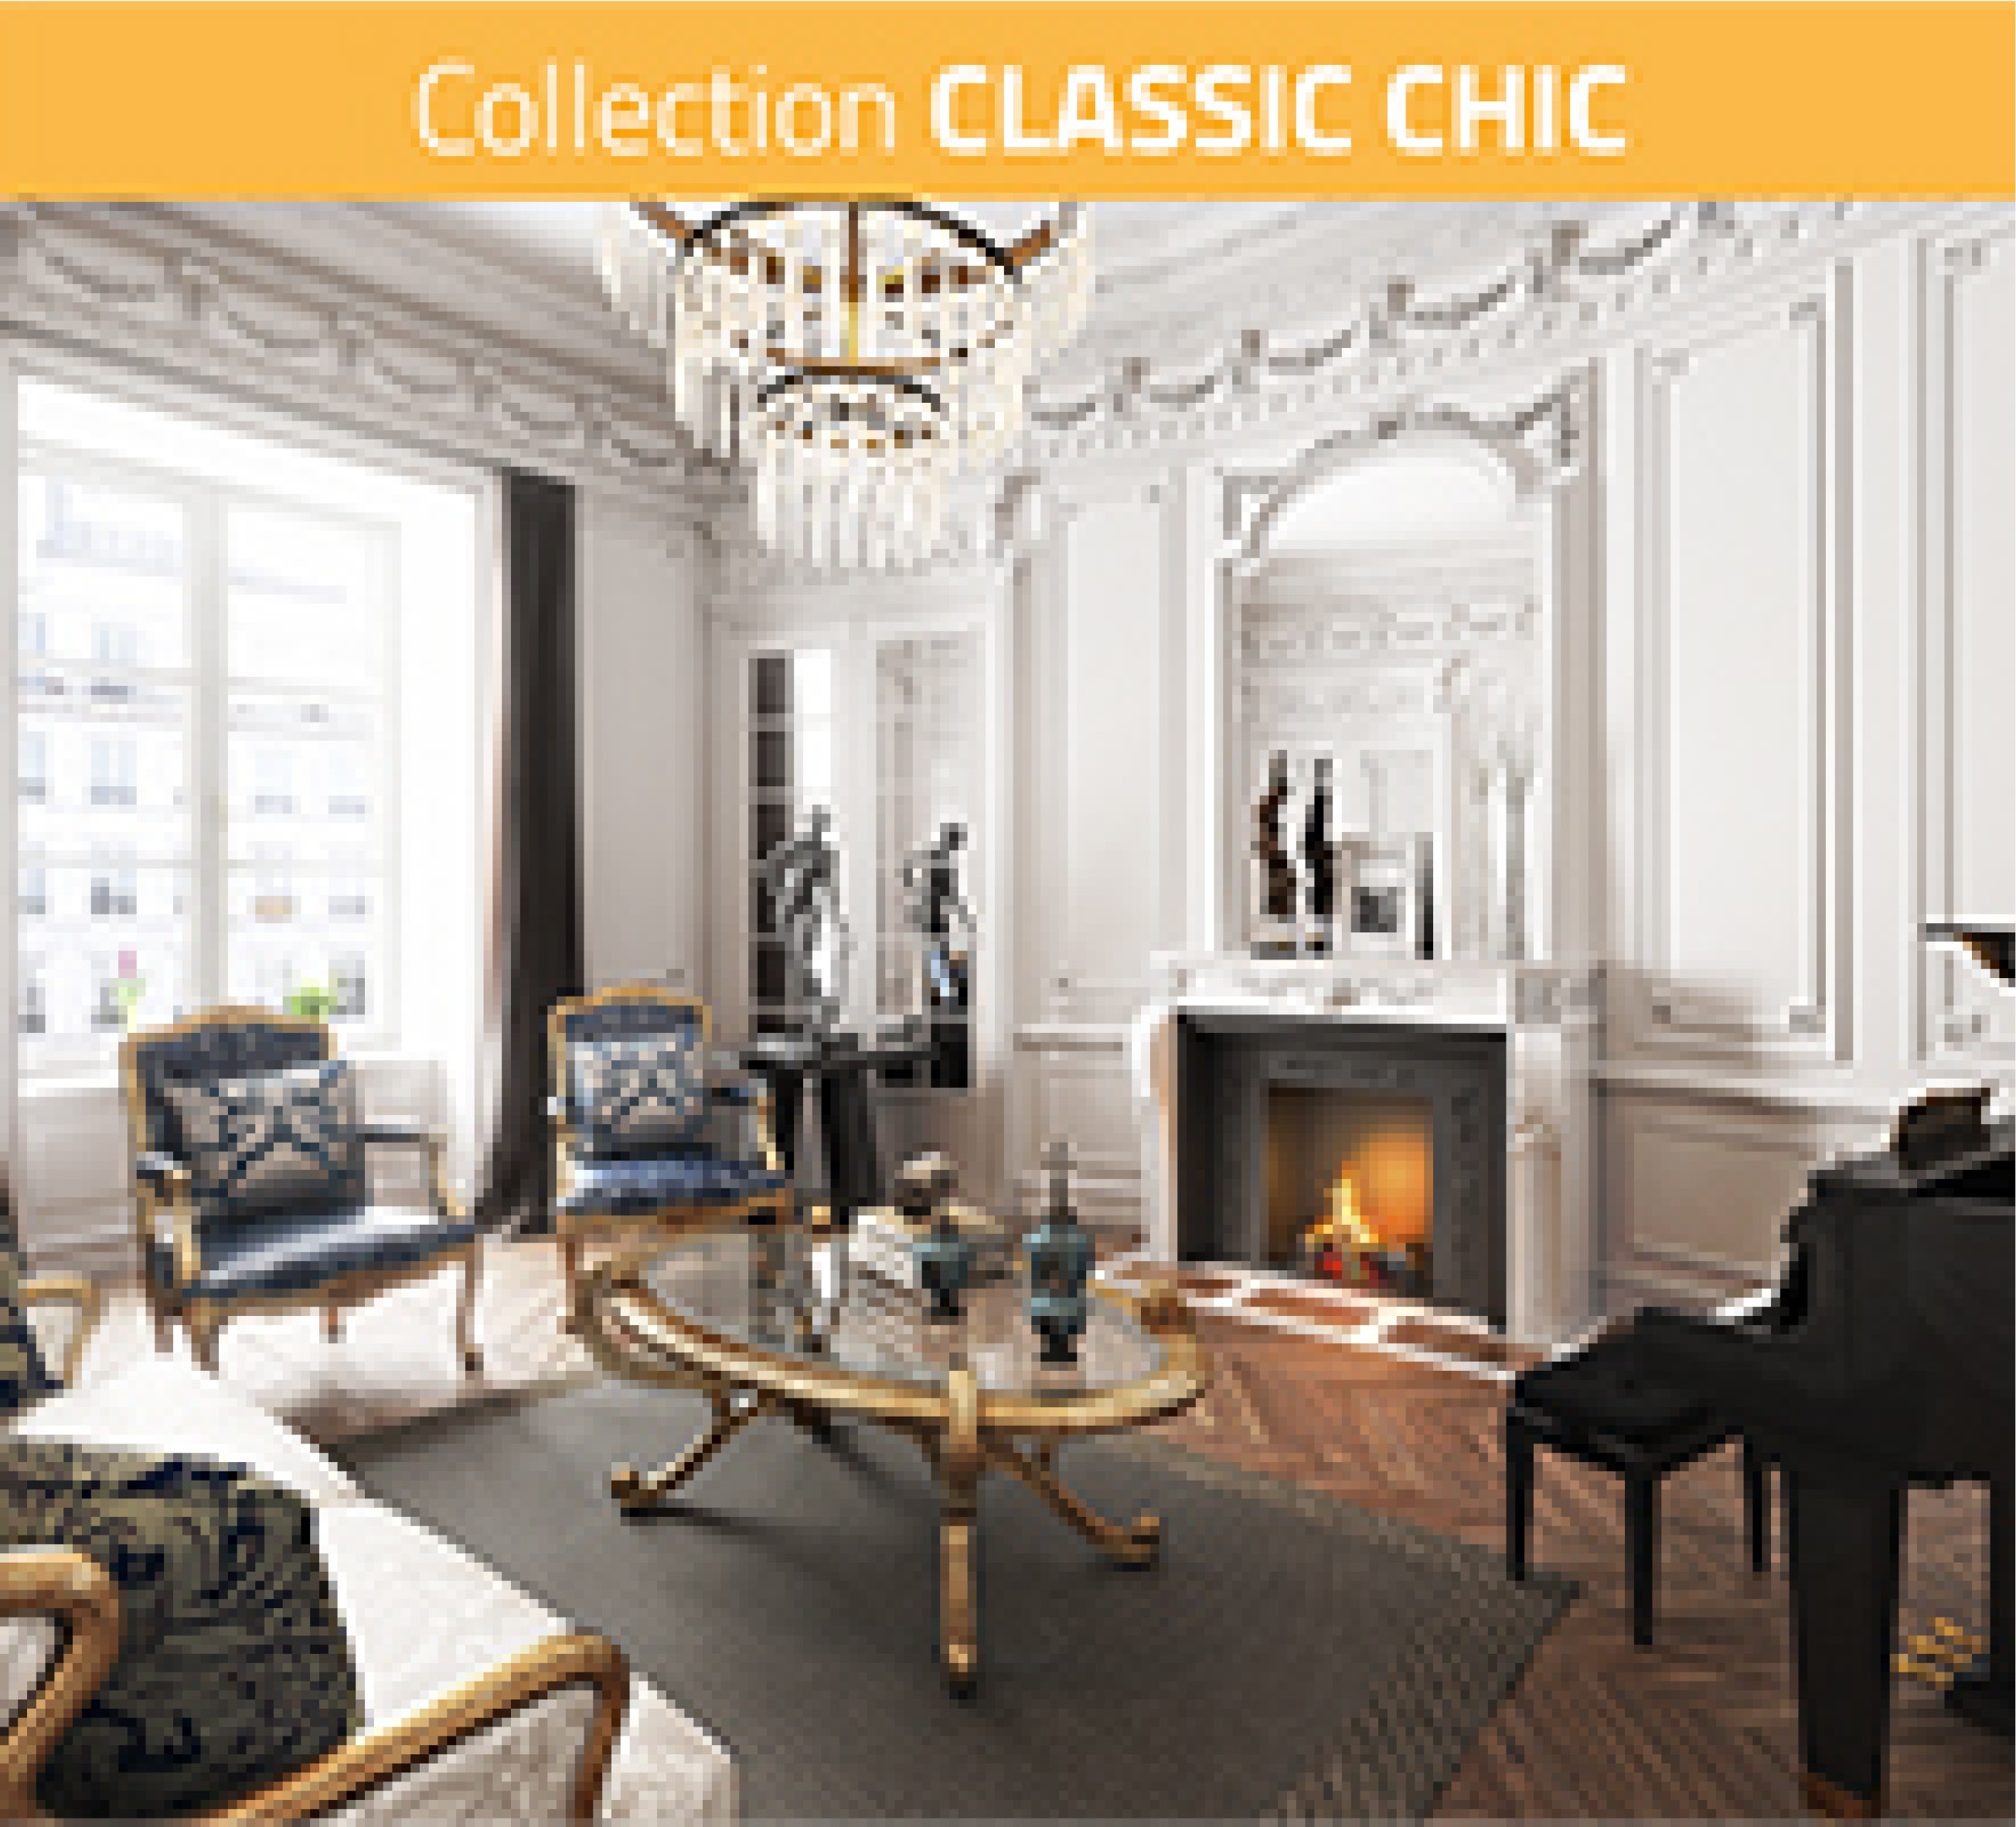 COLLECTION CLASSIC CHIC